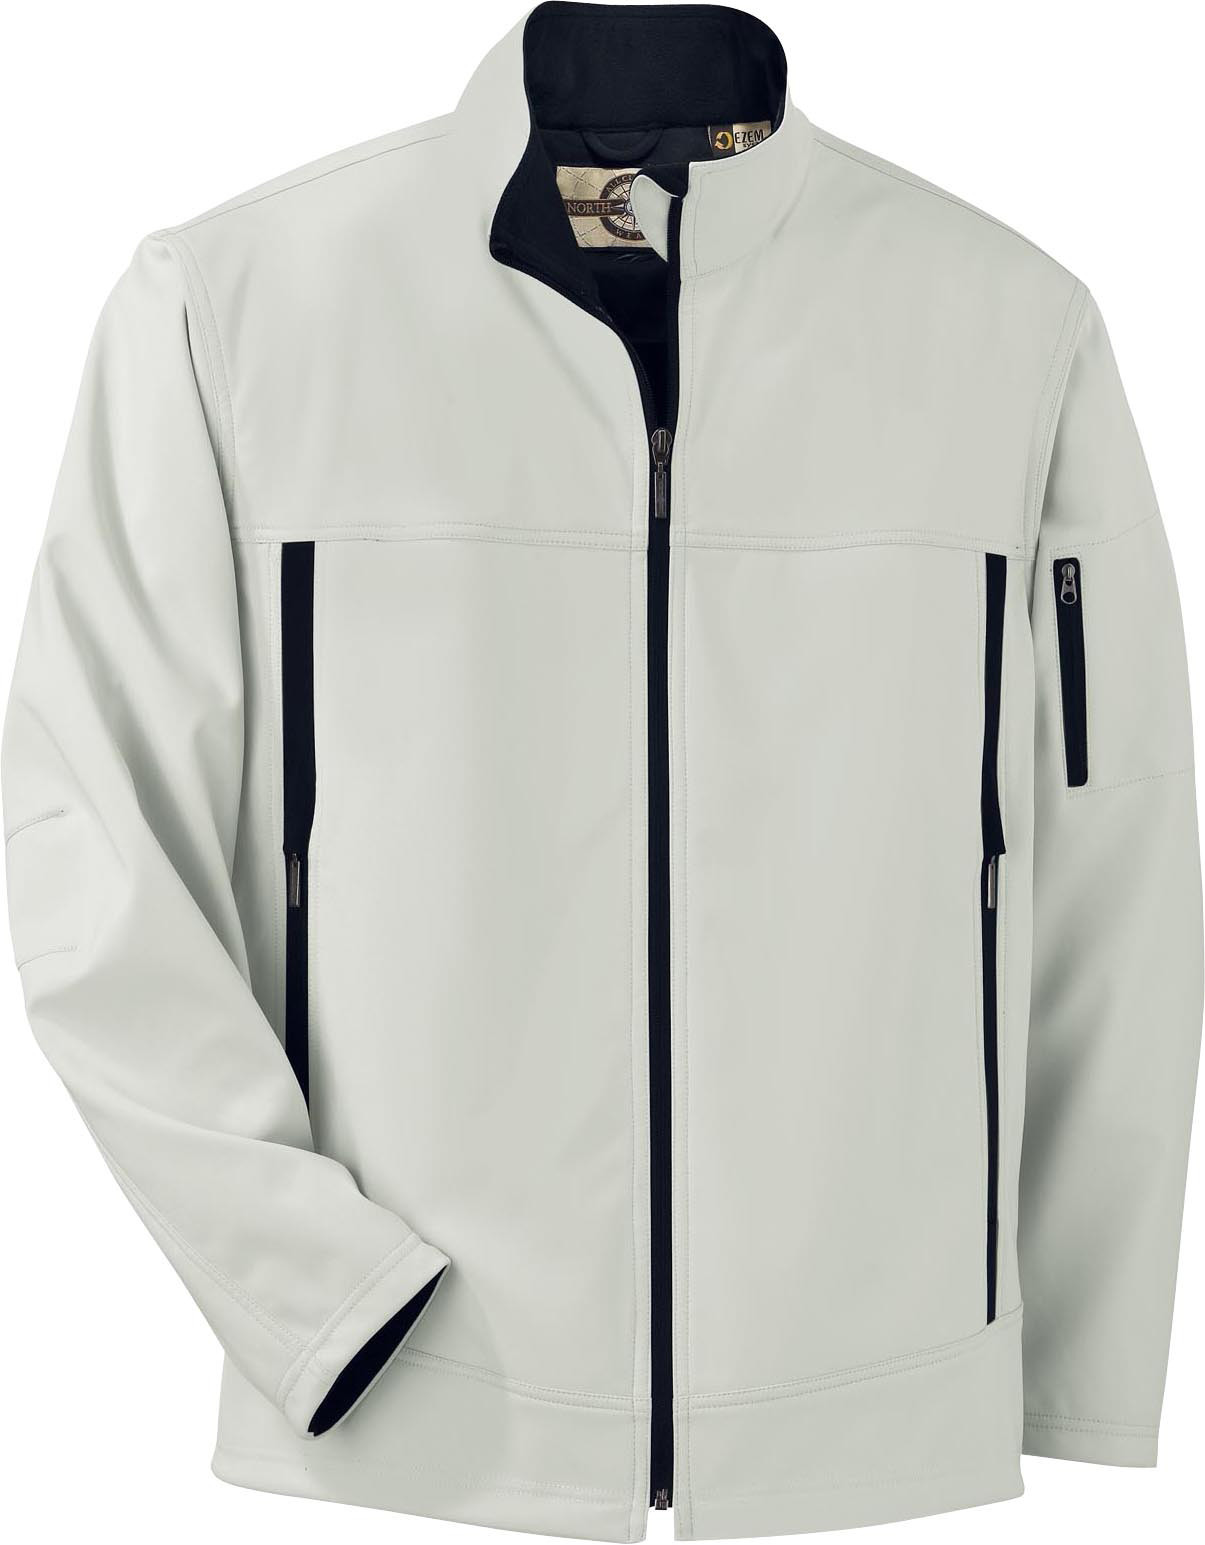 Ash City UTK 1 Warm.Logik 88099 - Men's Performance Soft Shell Jacket